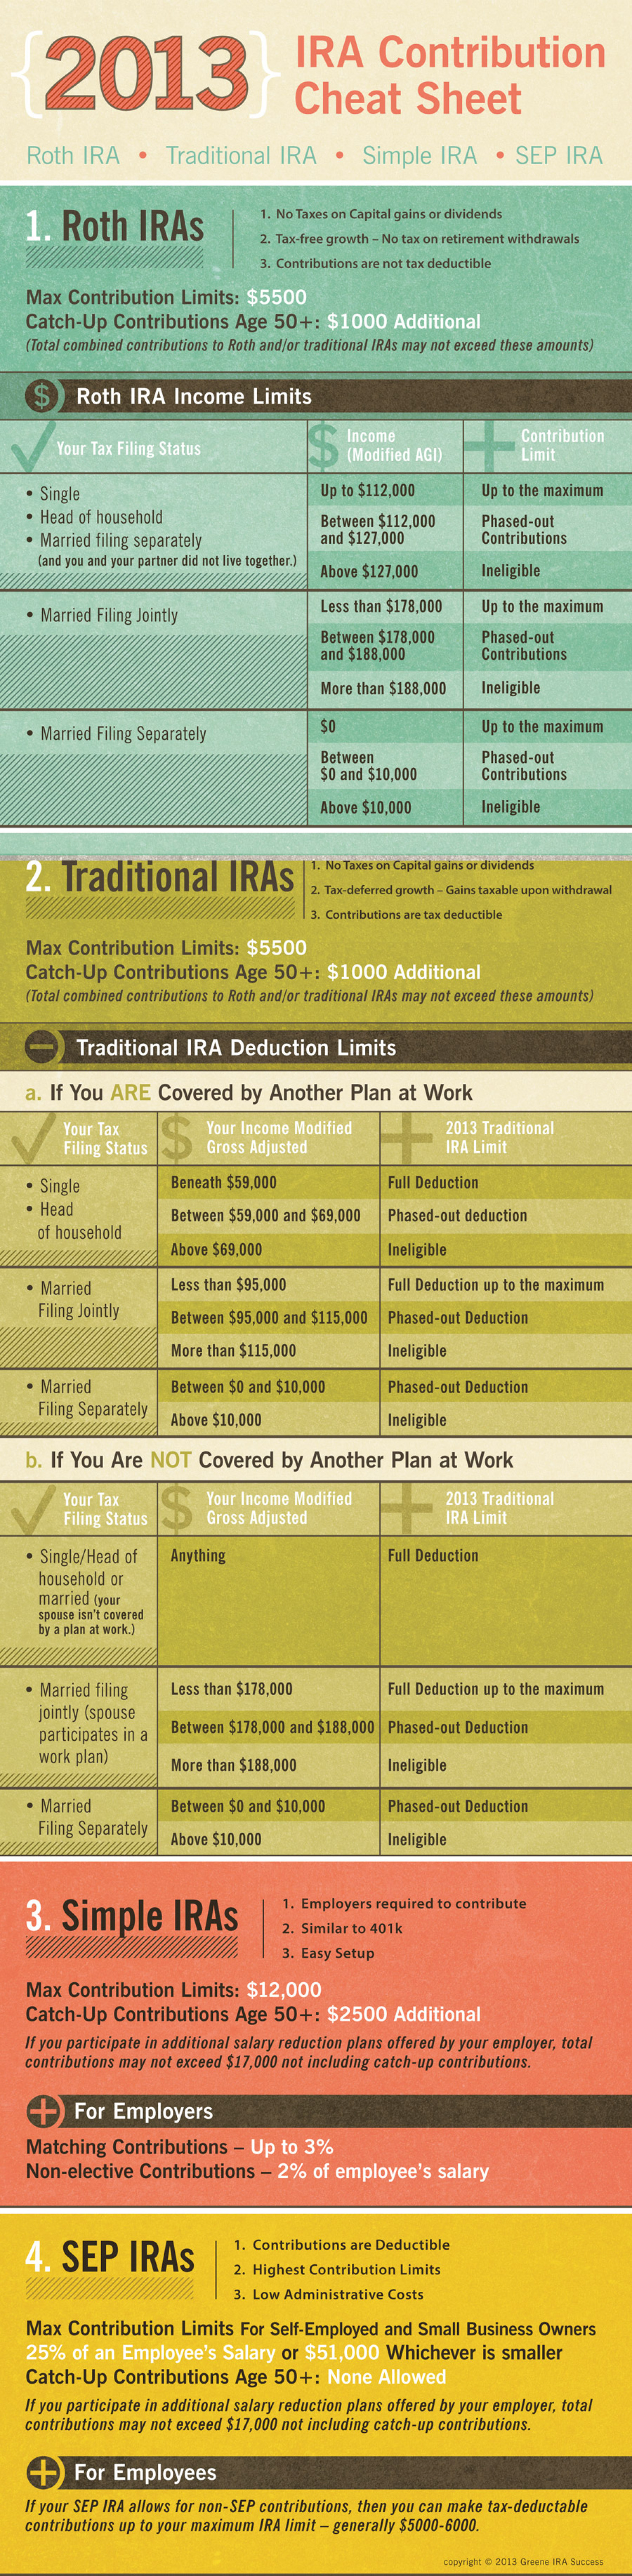 What Is The Formula To Calculate The Maximum Contribution For To A Sep Ira For